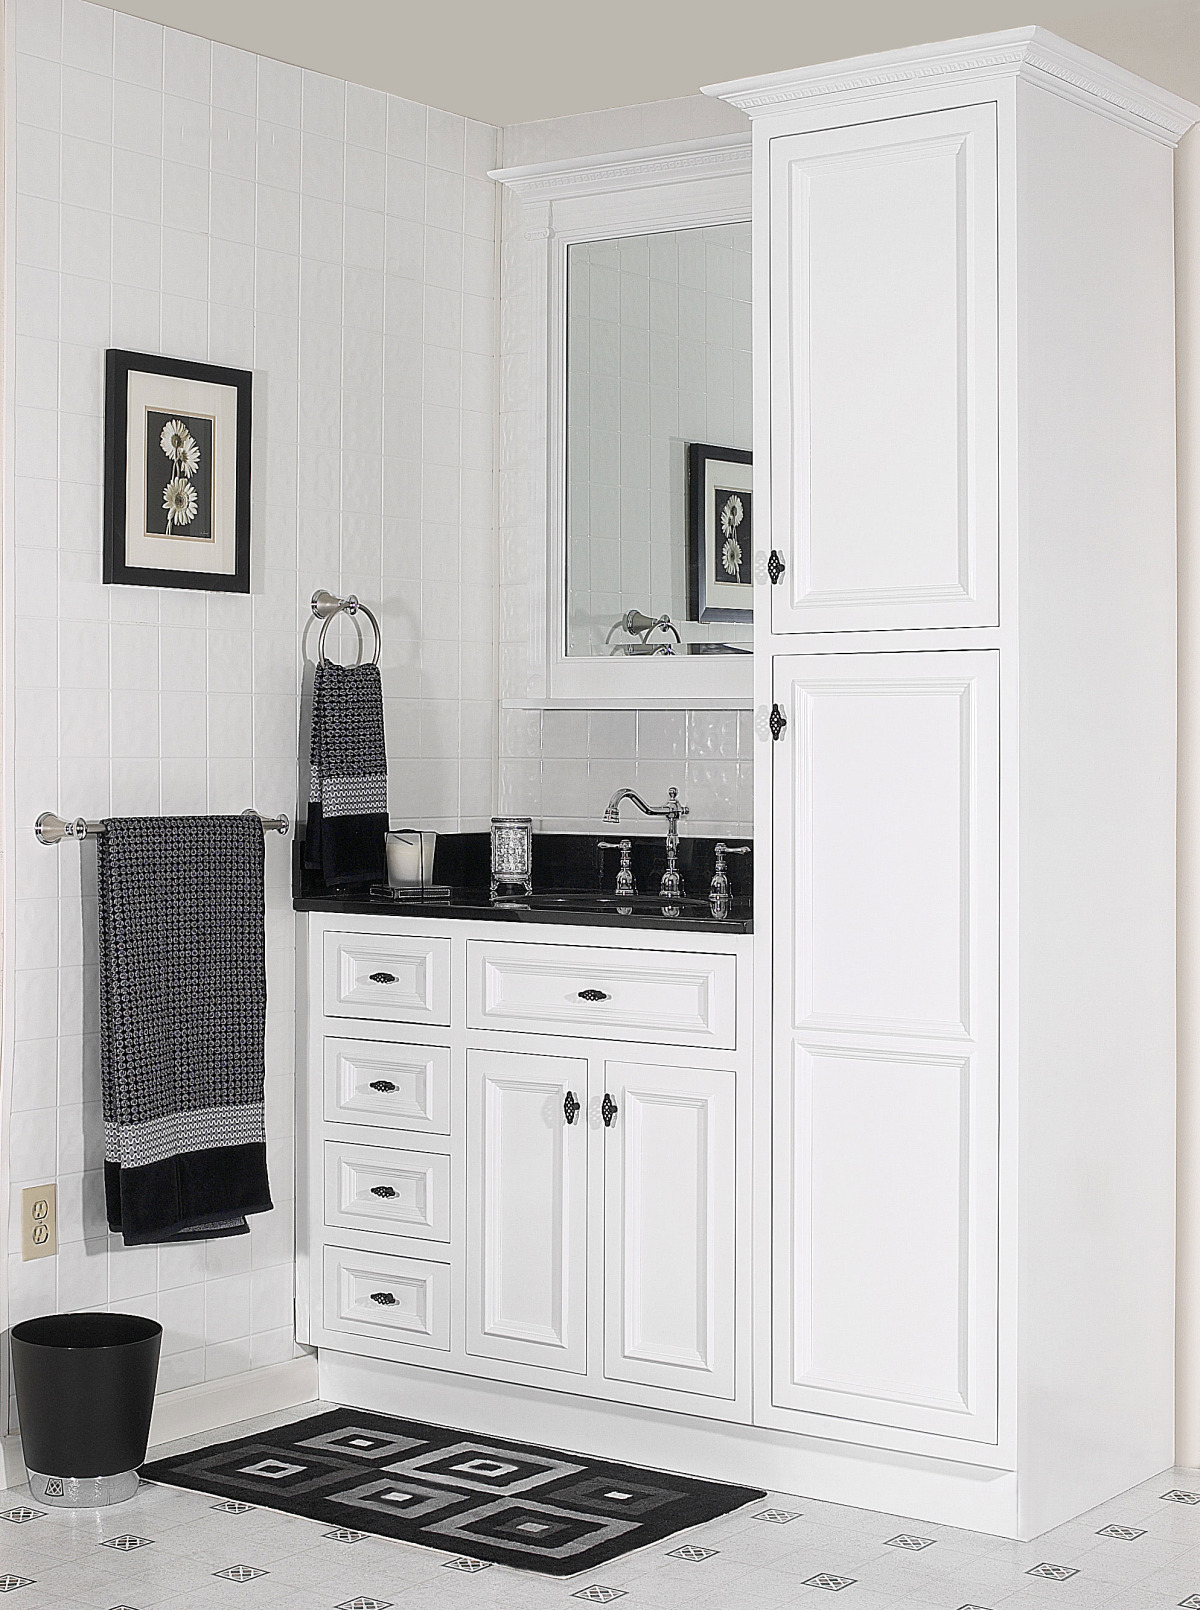 Bathroom Kitchen Cabinets Bathroom Vanity Premium Kitchen Cabinets